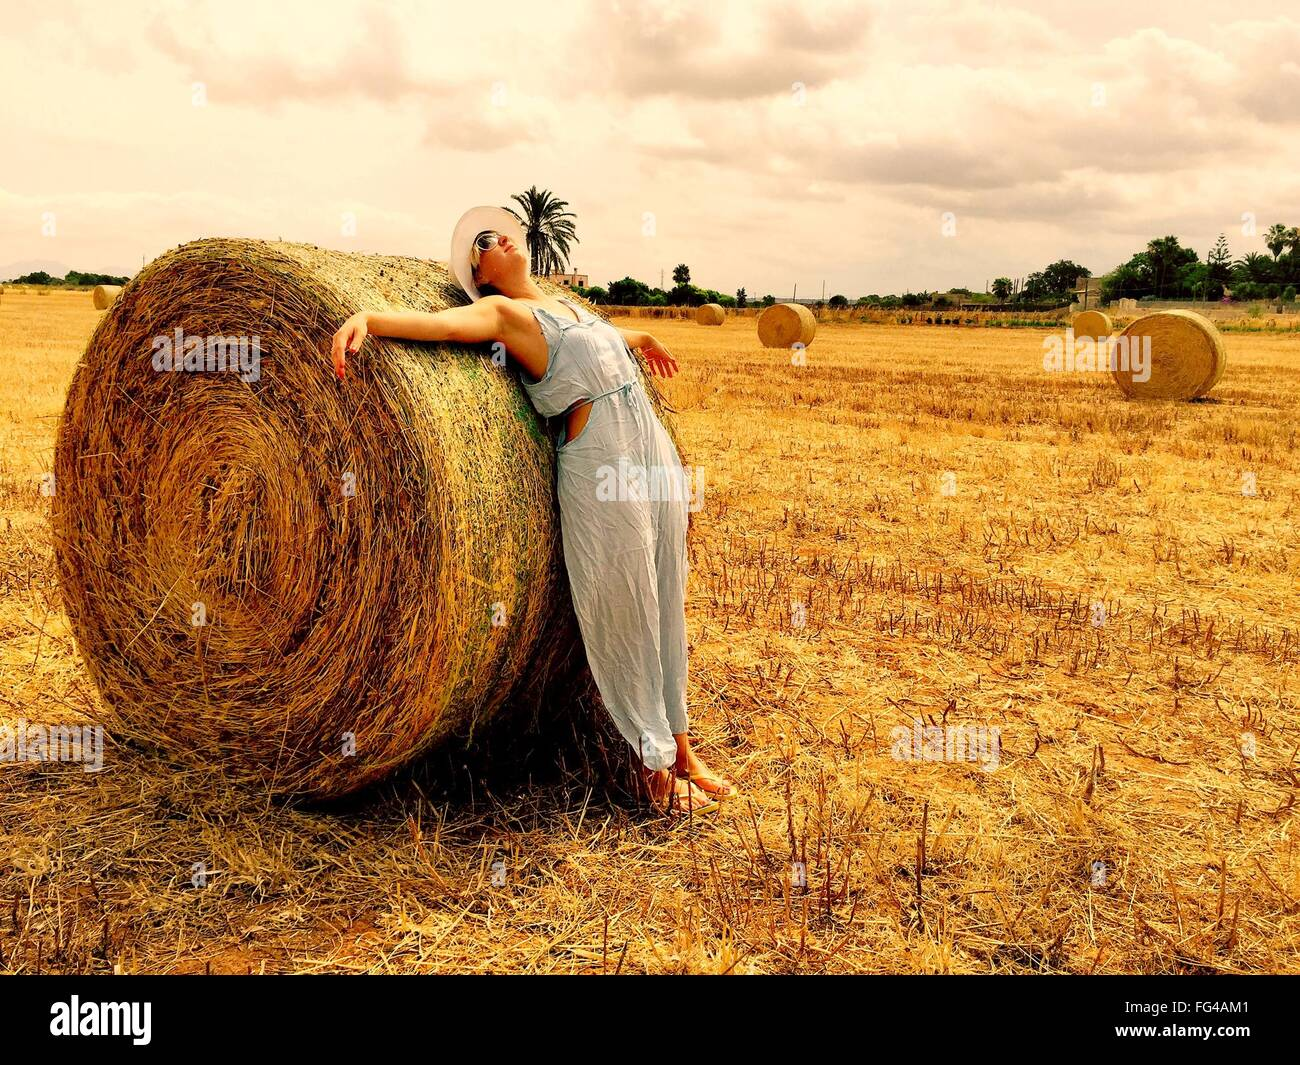 Woman Leaning On Hay Bale On Field Against Cloudy Sky - Stock Image